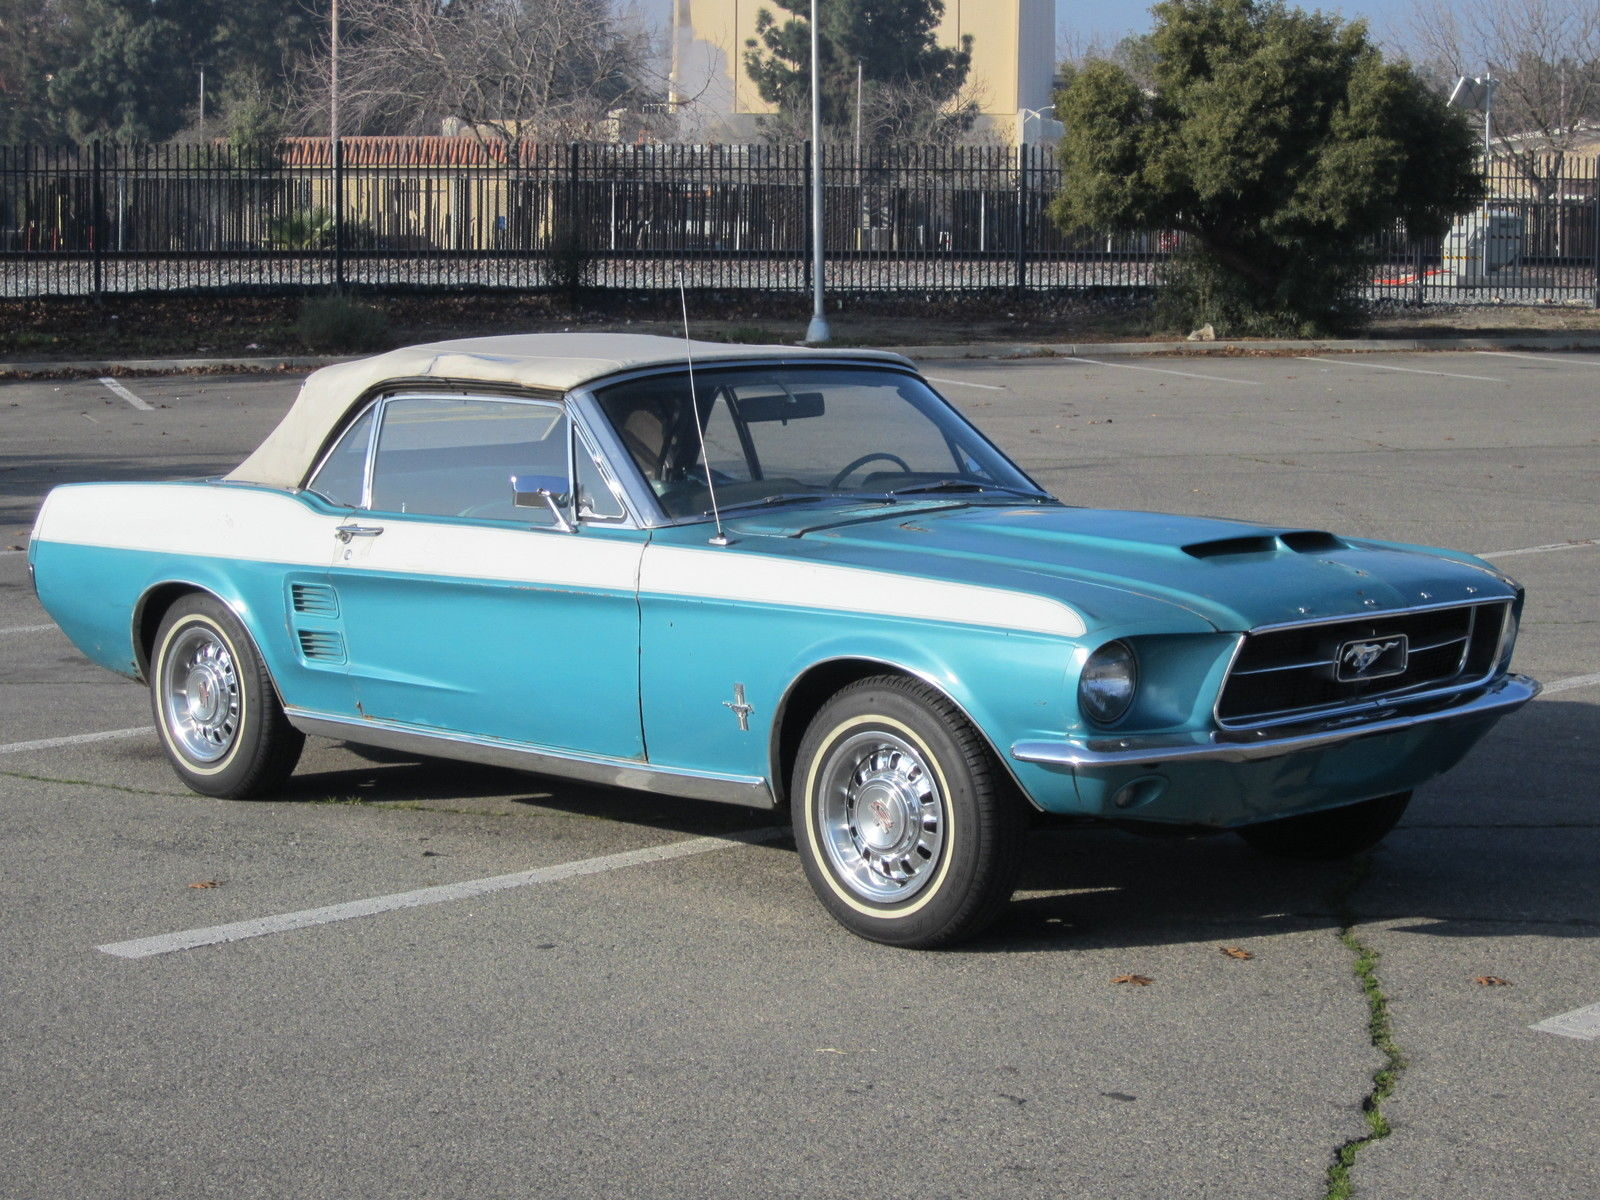 1967 ford mustang convertible v8 auto p s gt wheels 39 c 39 code runs and drives for sale in. Black Bedroom Furniture Sets. Home Design Ideas